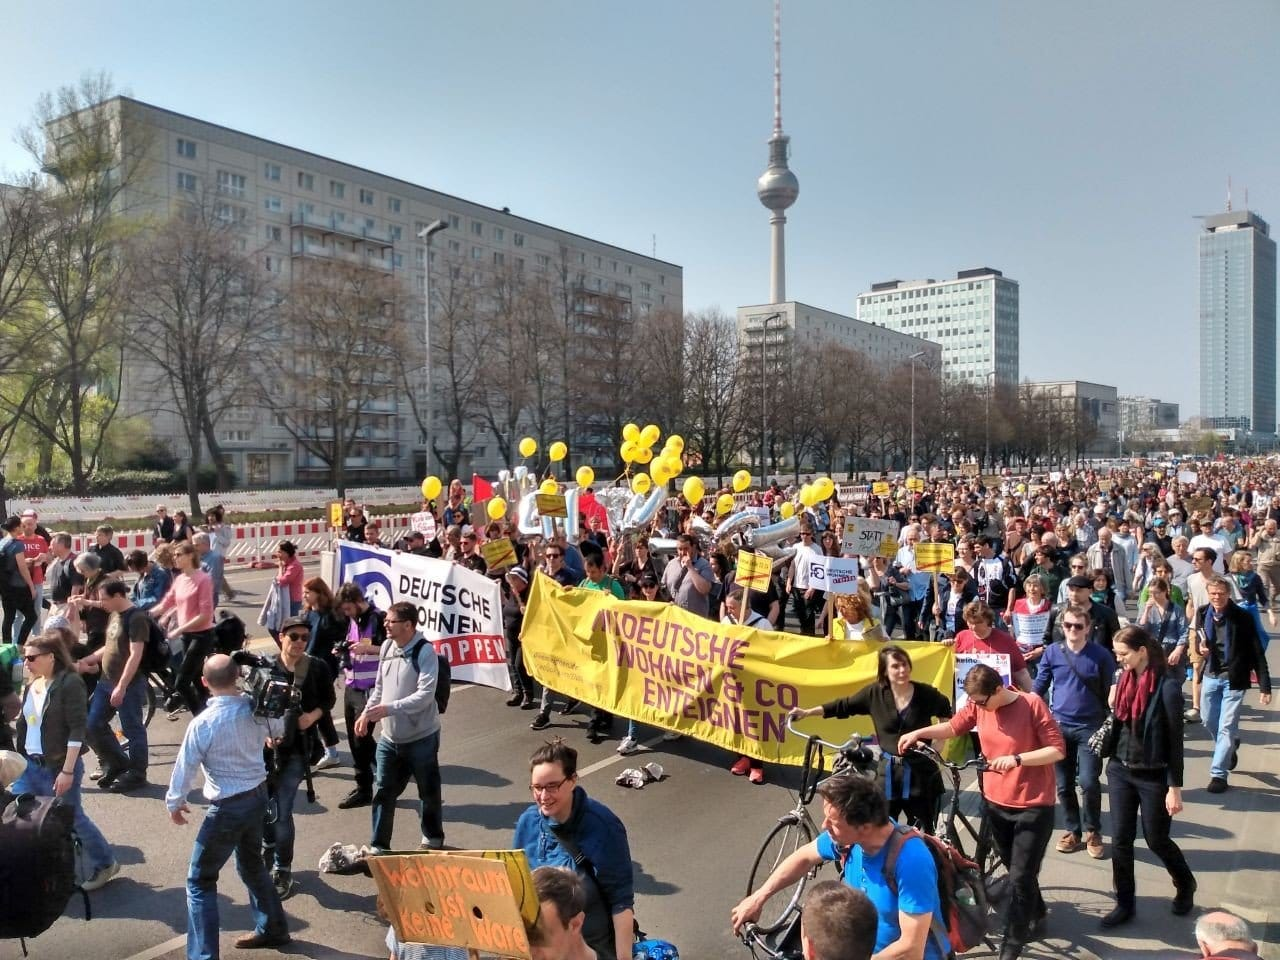 Demanding affordable housing, thousands march in Berlin ...